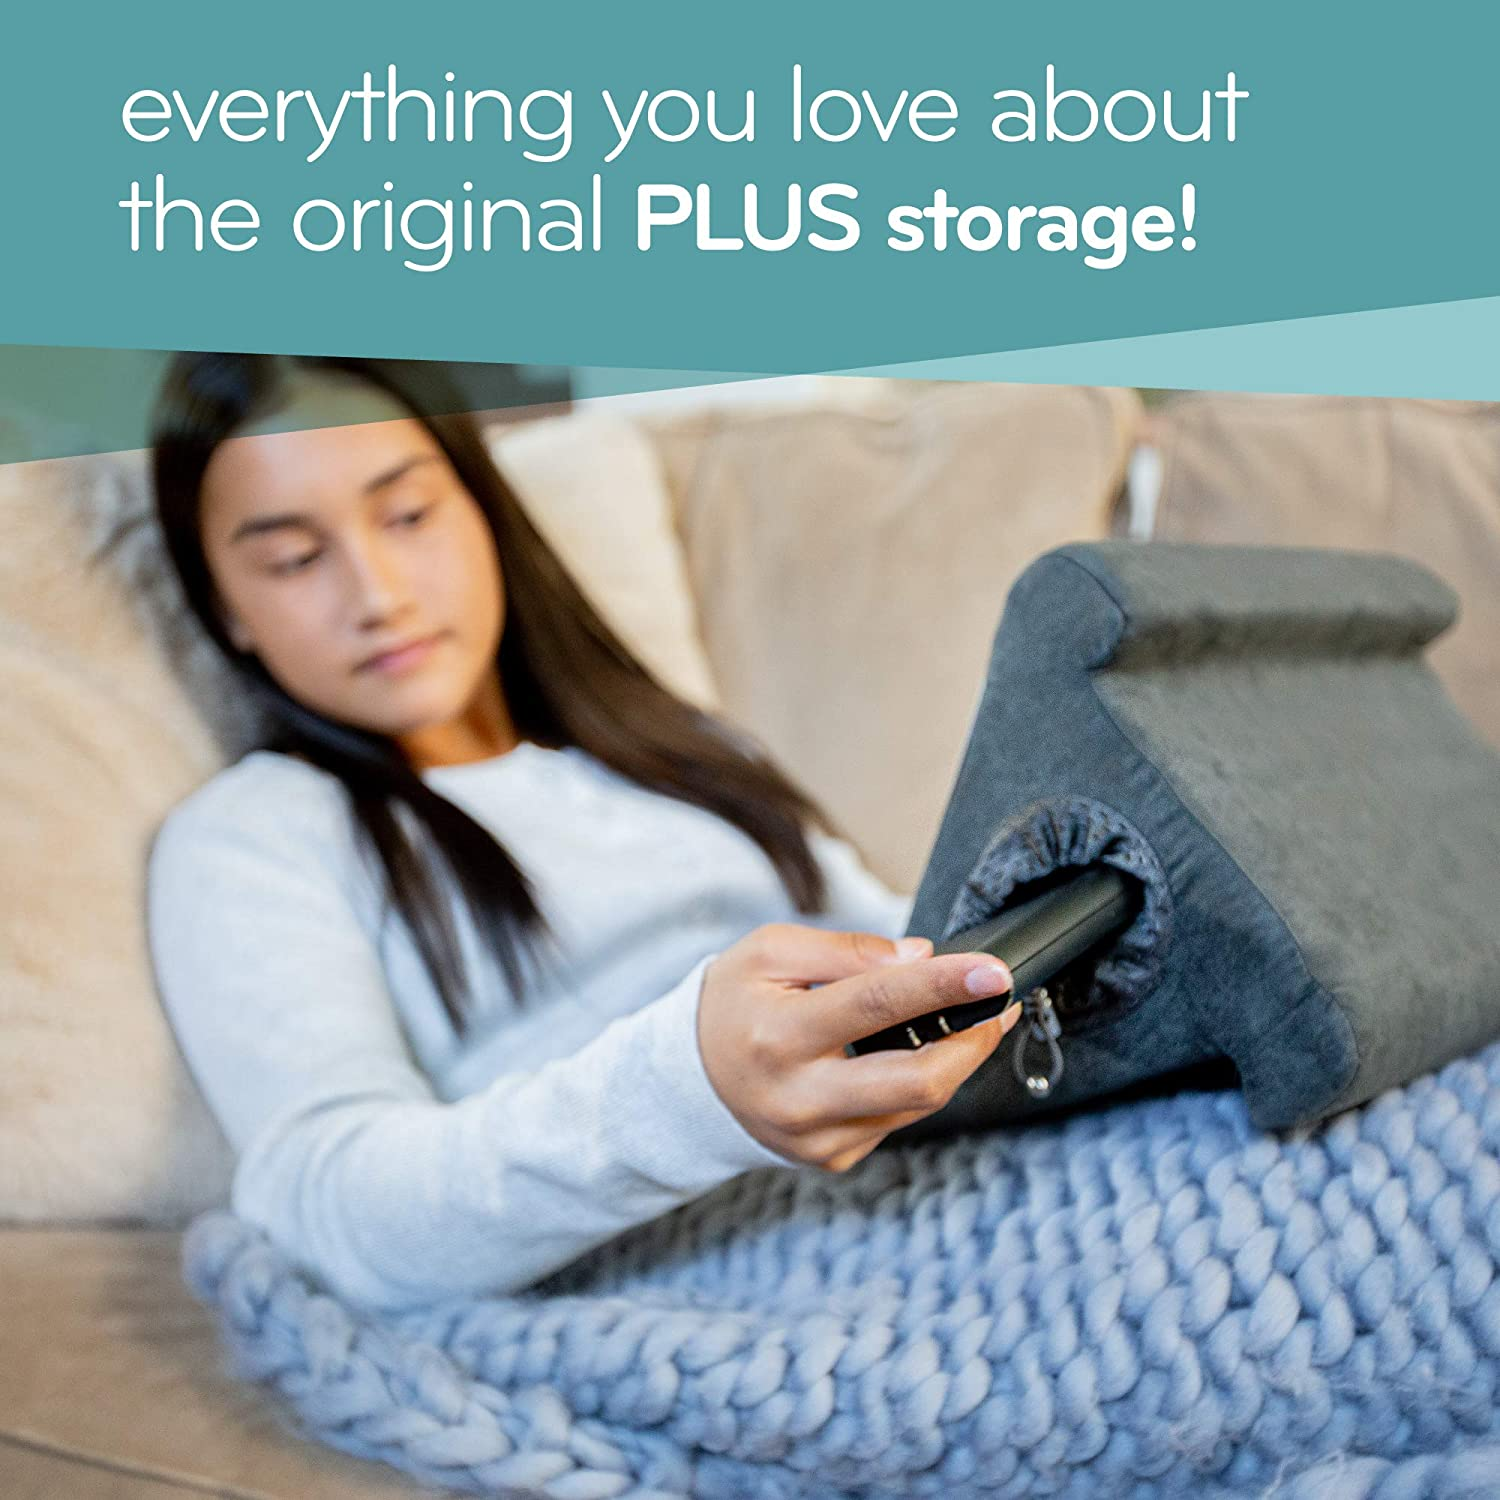 the original flippy cubby multi angle soft pillow lap stand for ipads tablets ereaders smartphones books magazines